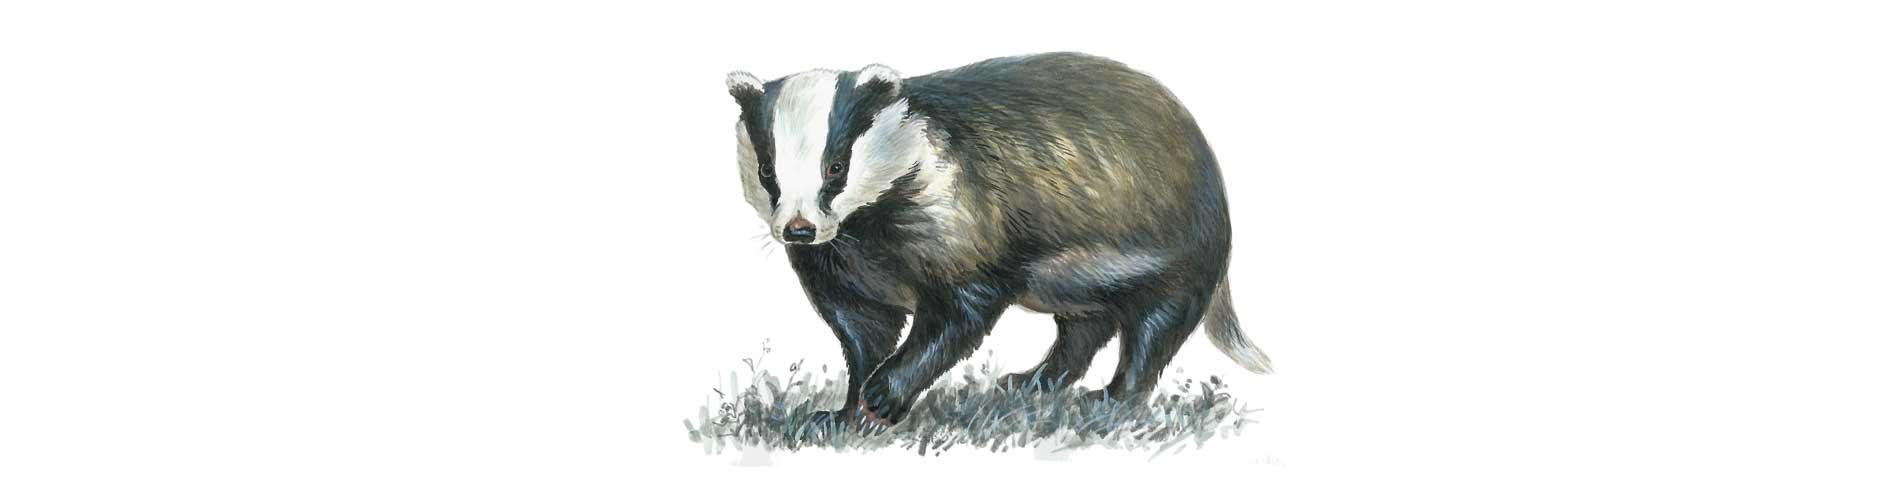 Watch badgers and bats with Mike Langman at Sharpham